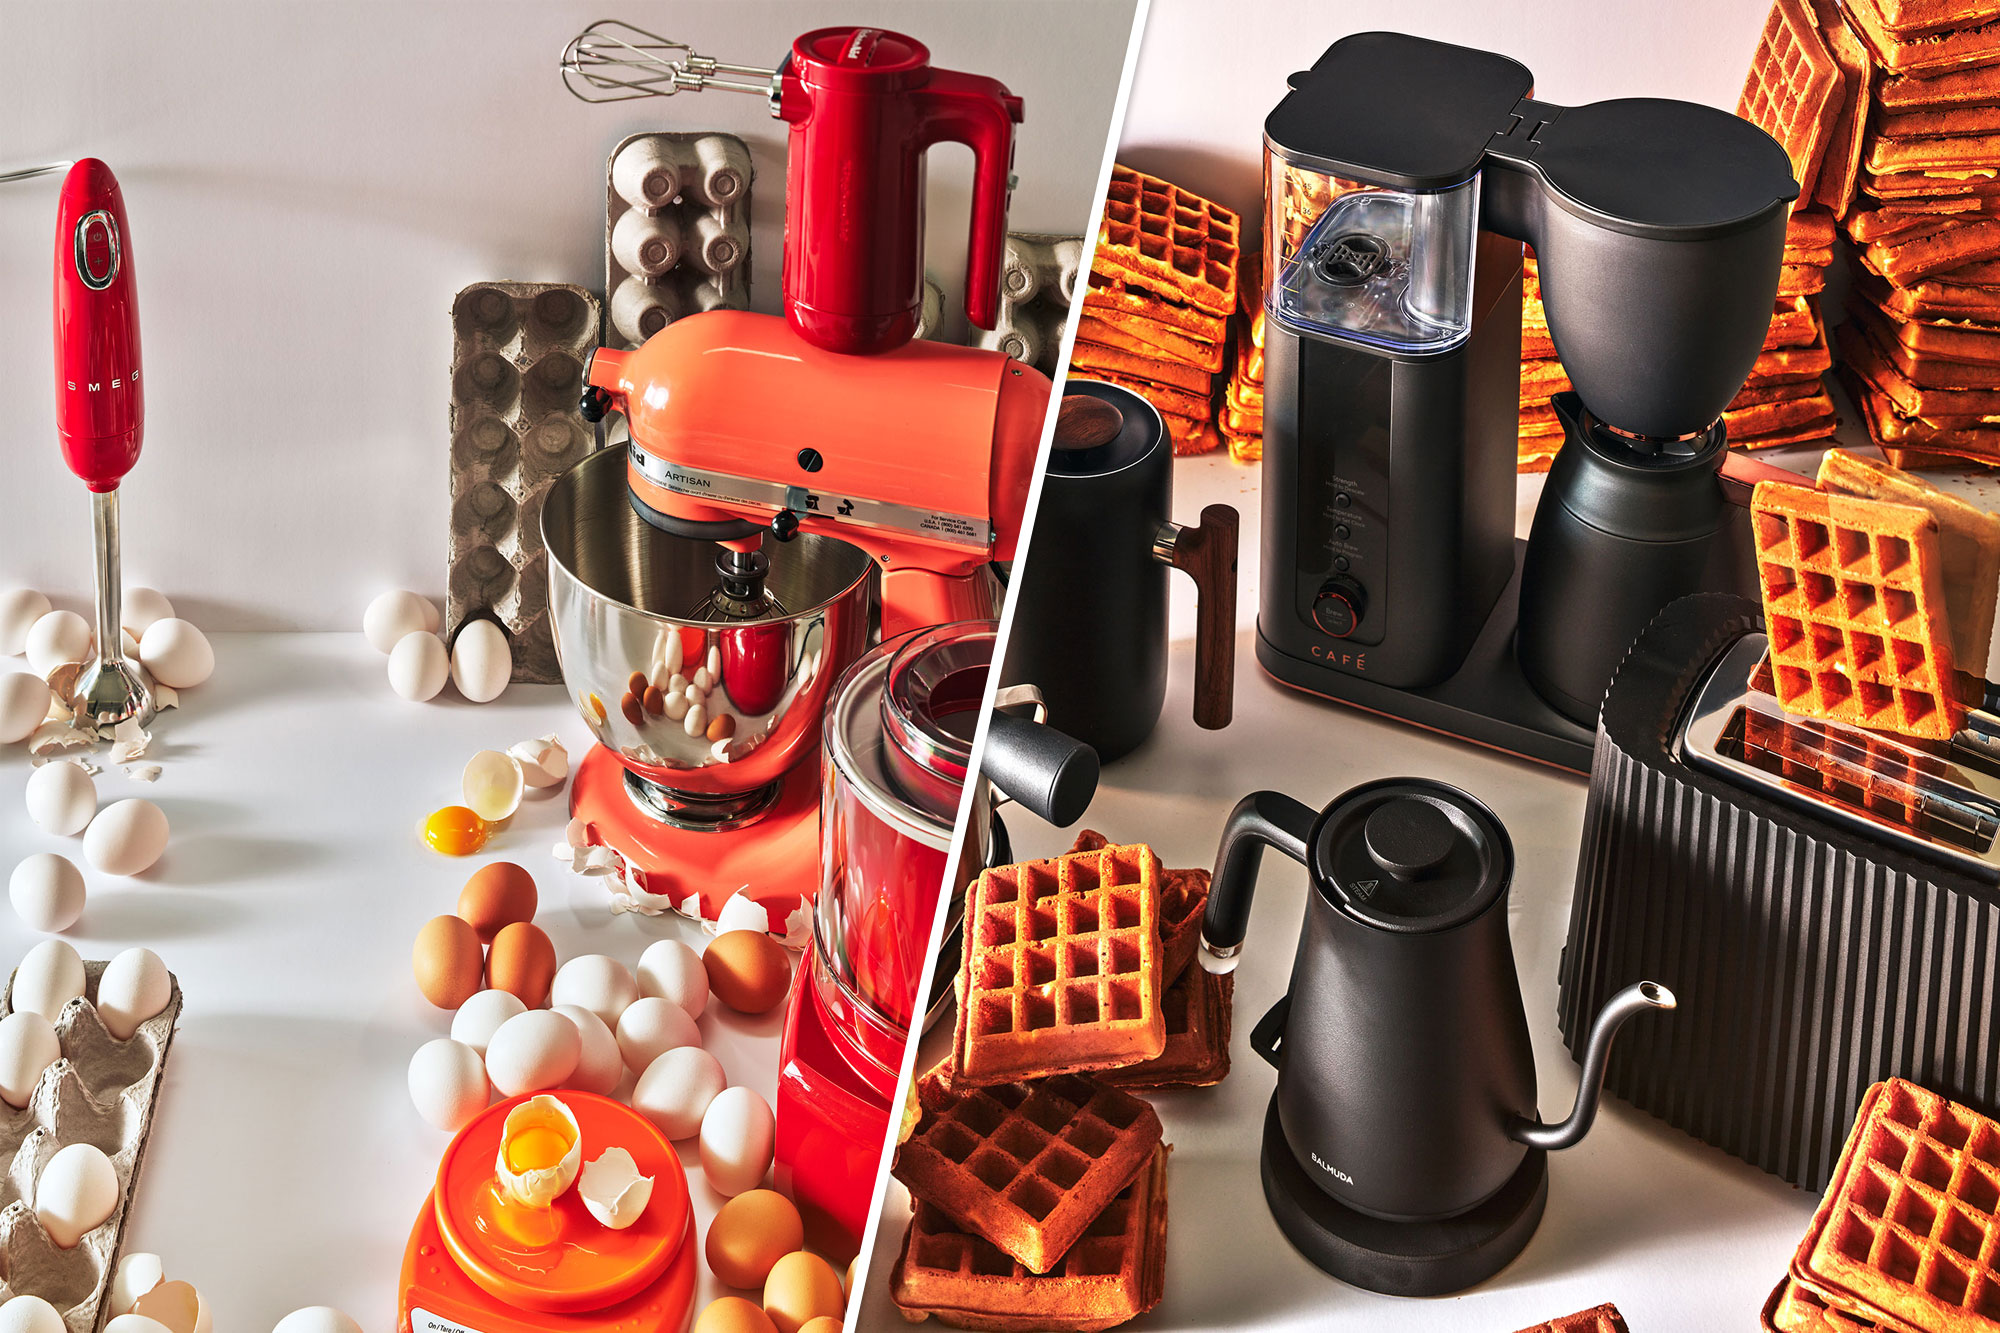 Appliances for baking and breakfast